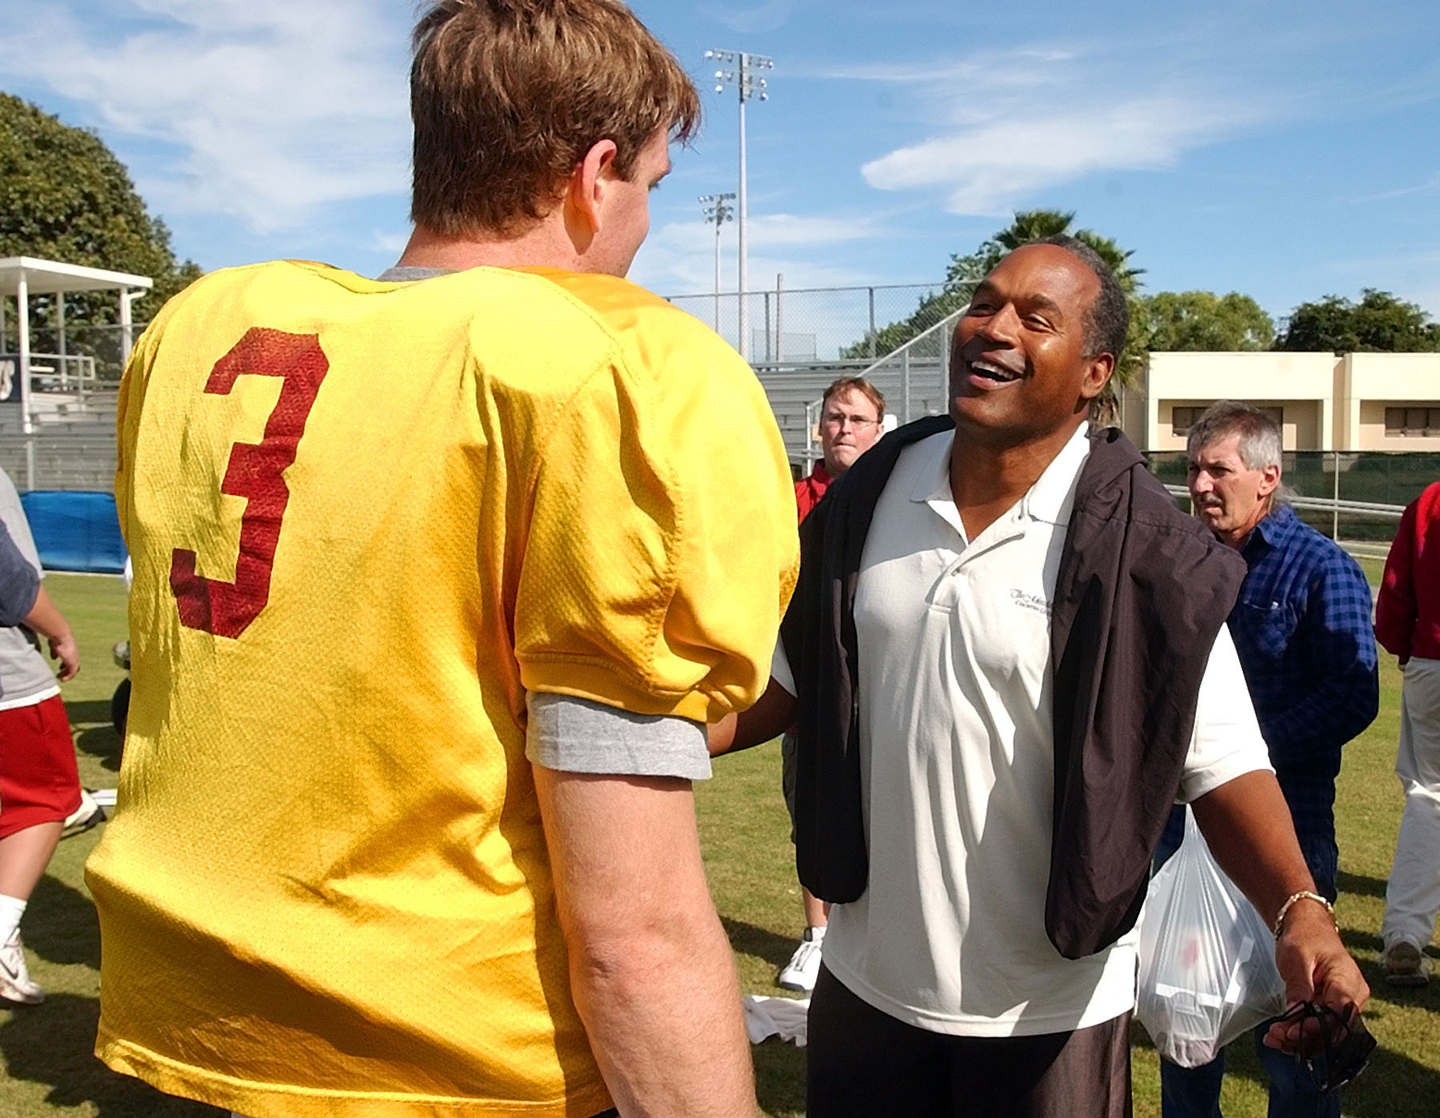 University of Southern California quarterback Carson Palmer talks to former football great O.J. Simpson after practice for the Orange Bowl game Saturday, Dec. 28, 2002 in Davie, Fla. The two are winners of the Heisman trophy.